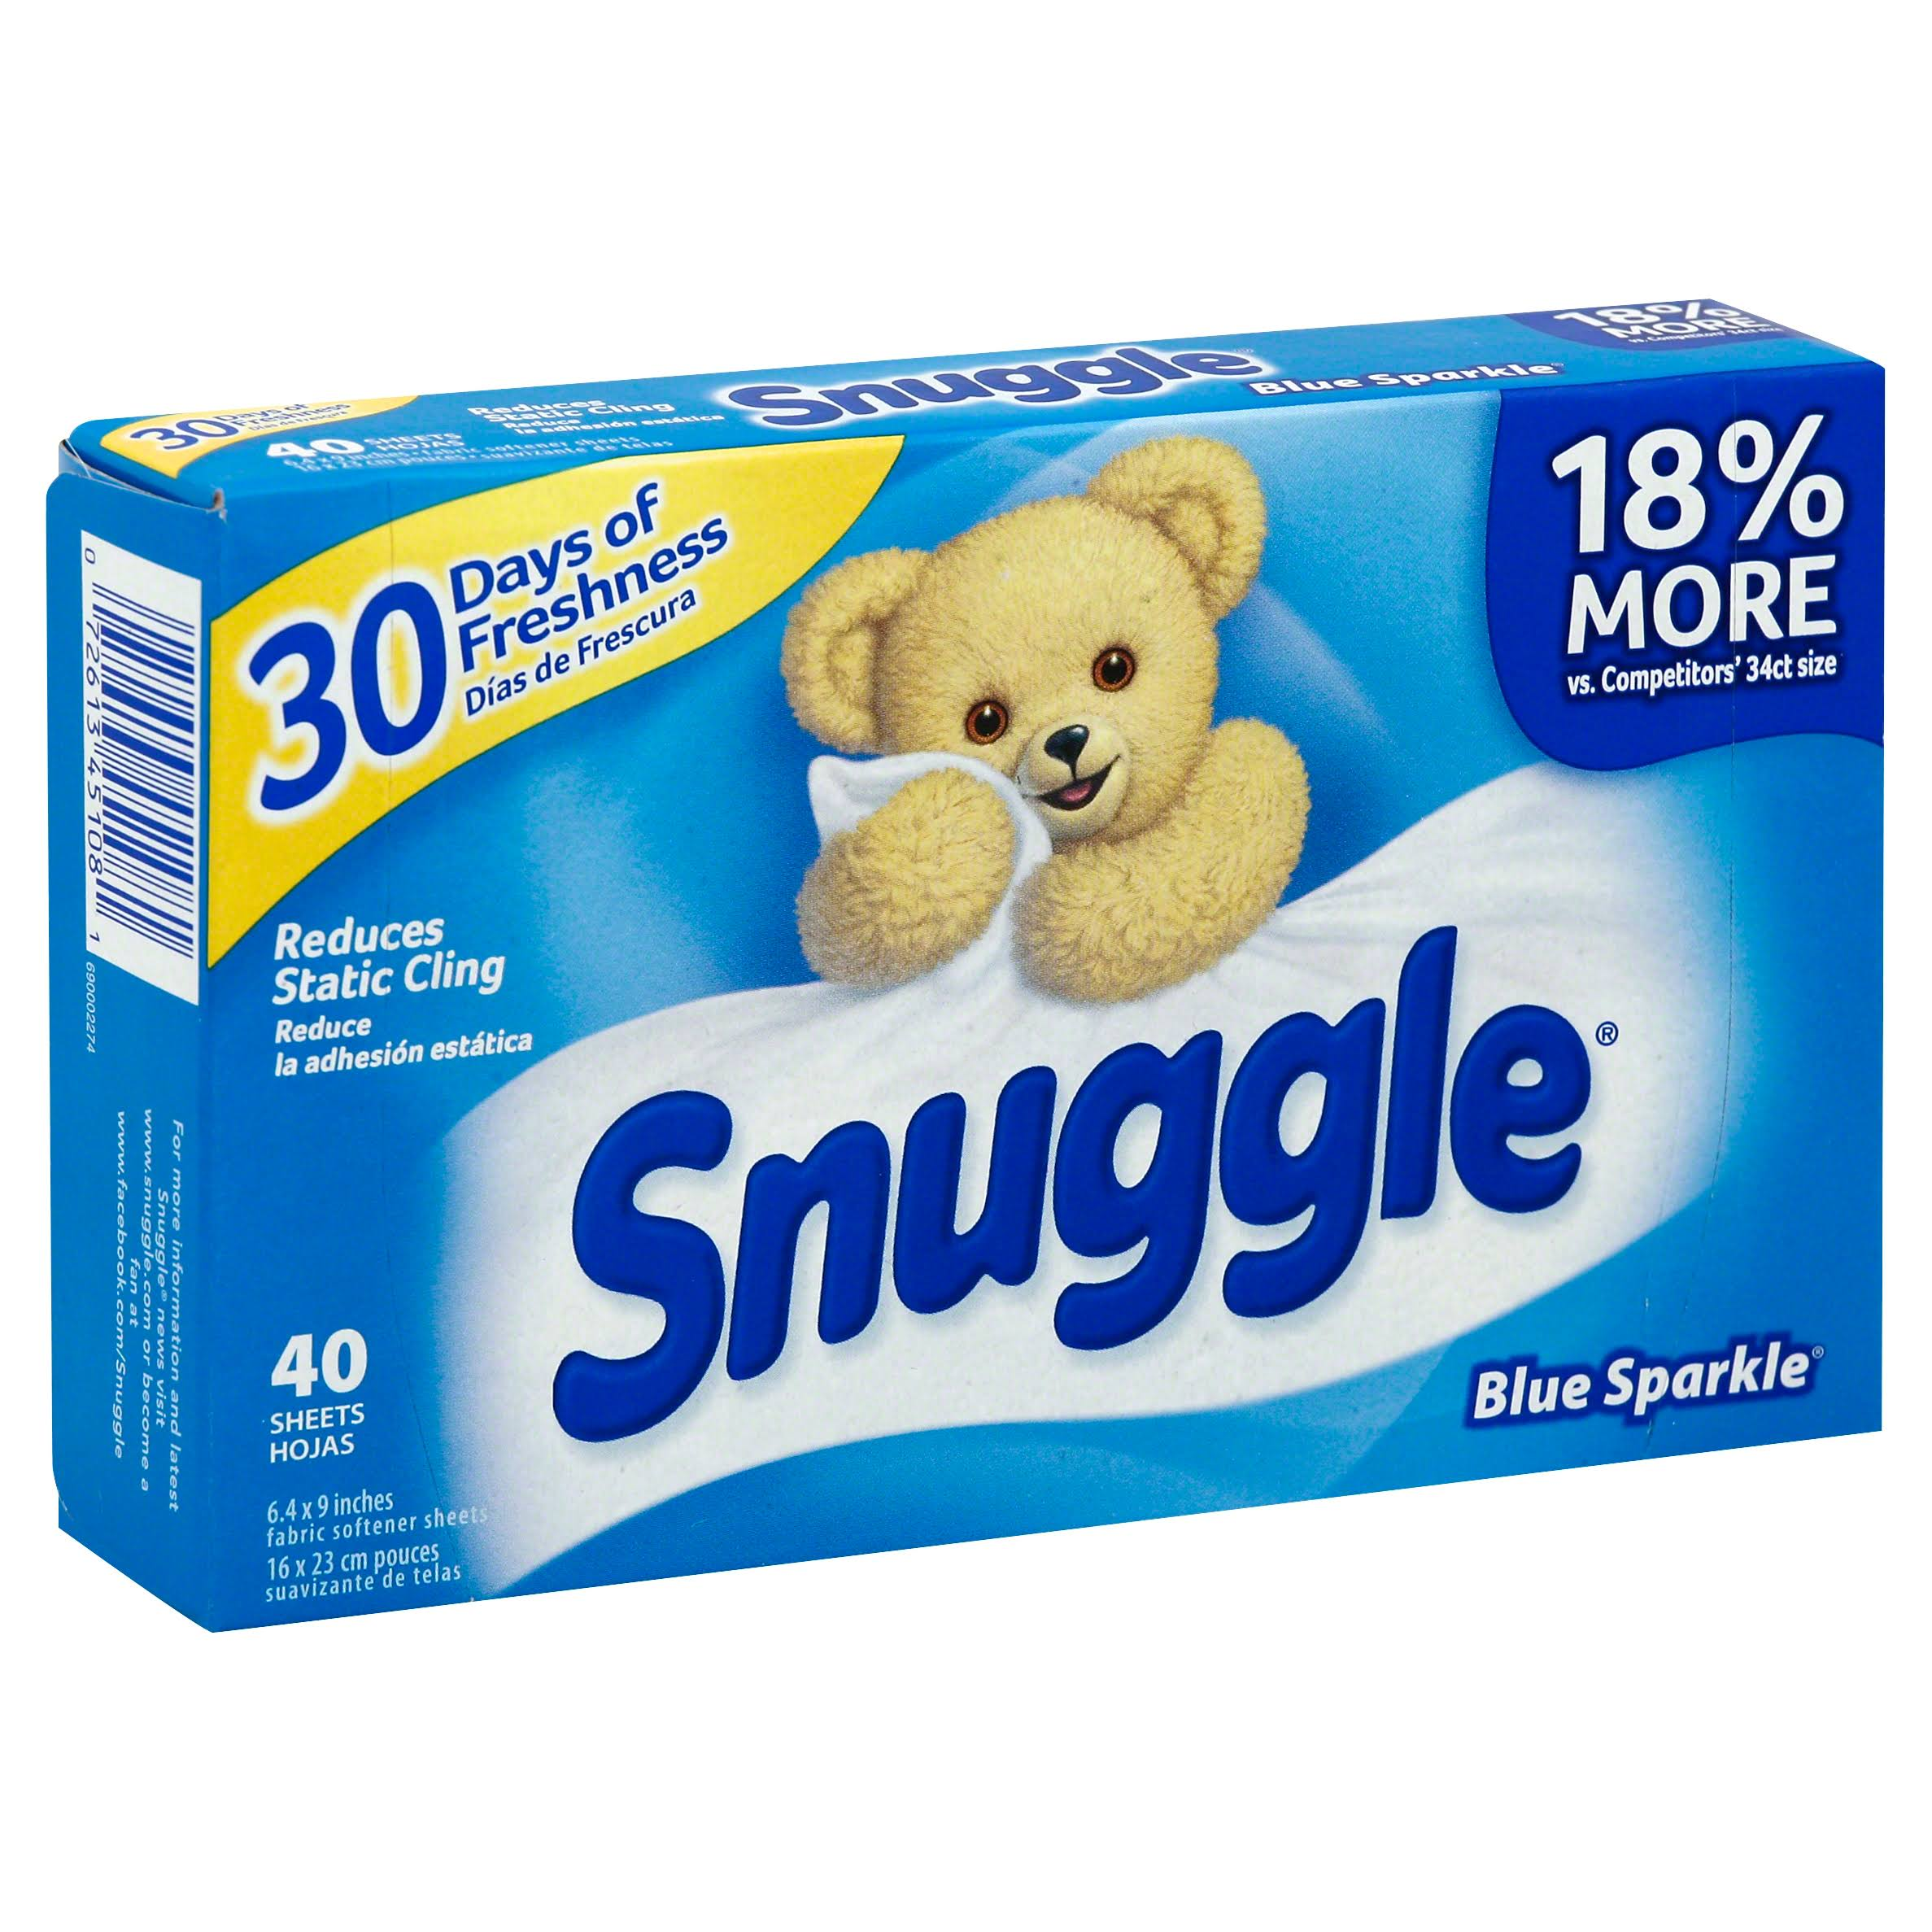 Snuggle Blue Sparkle Fabric Conditioner Sheets - 40pk